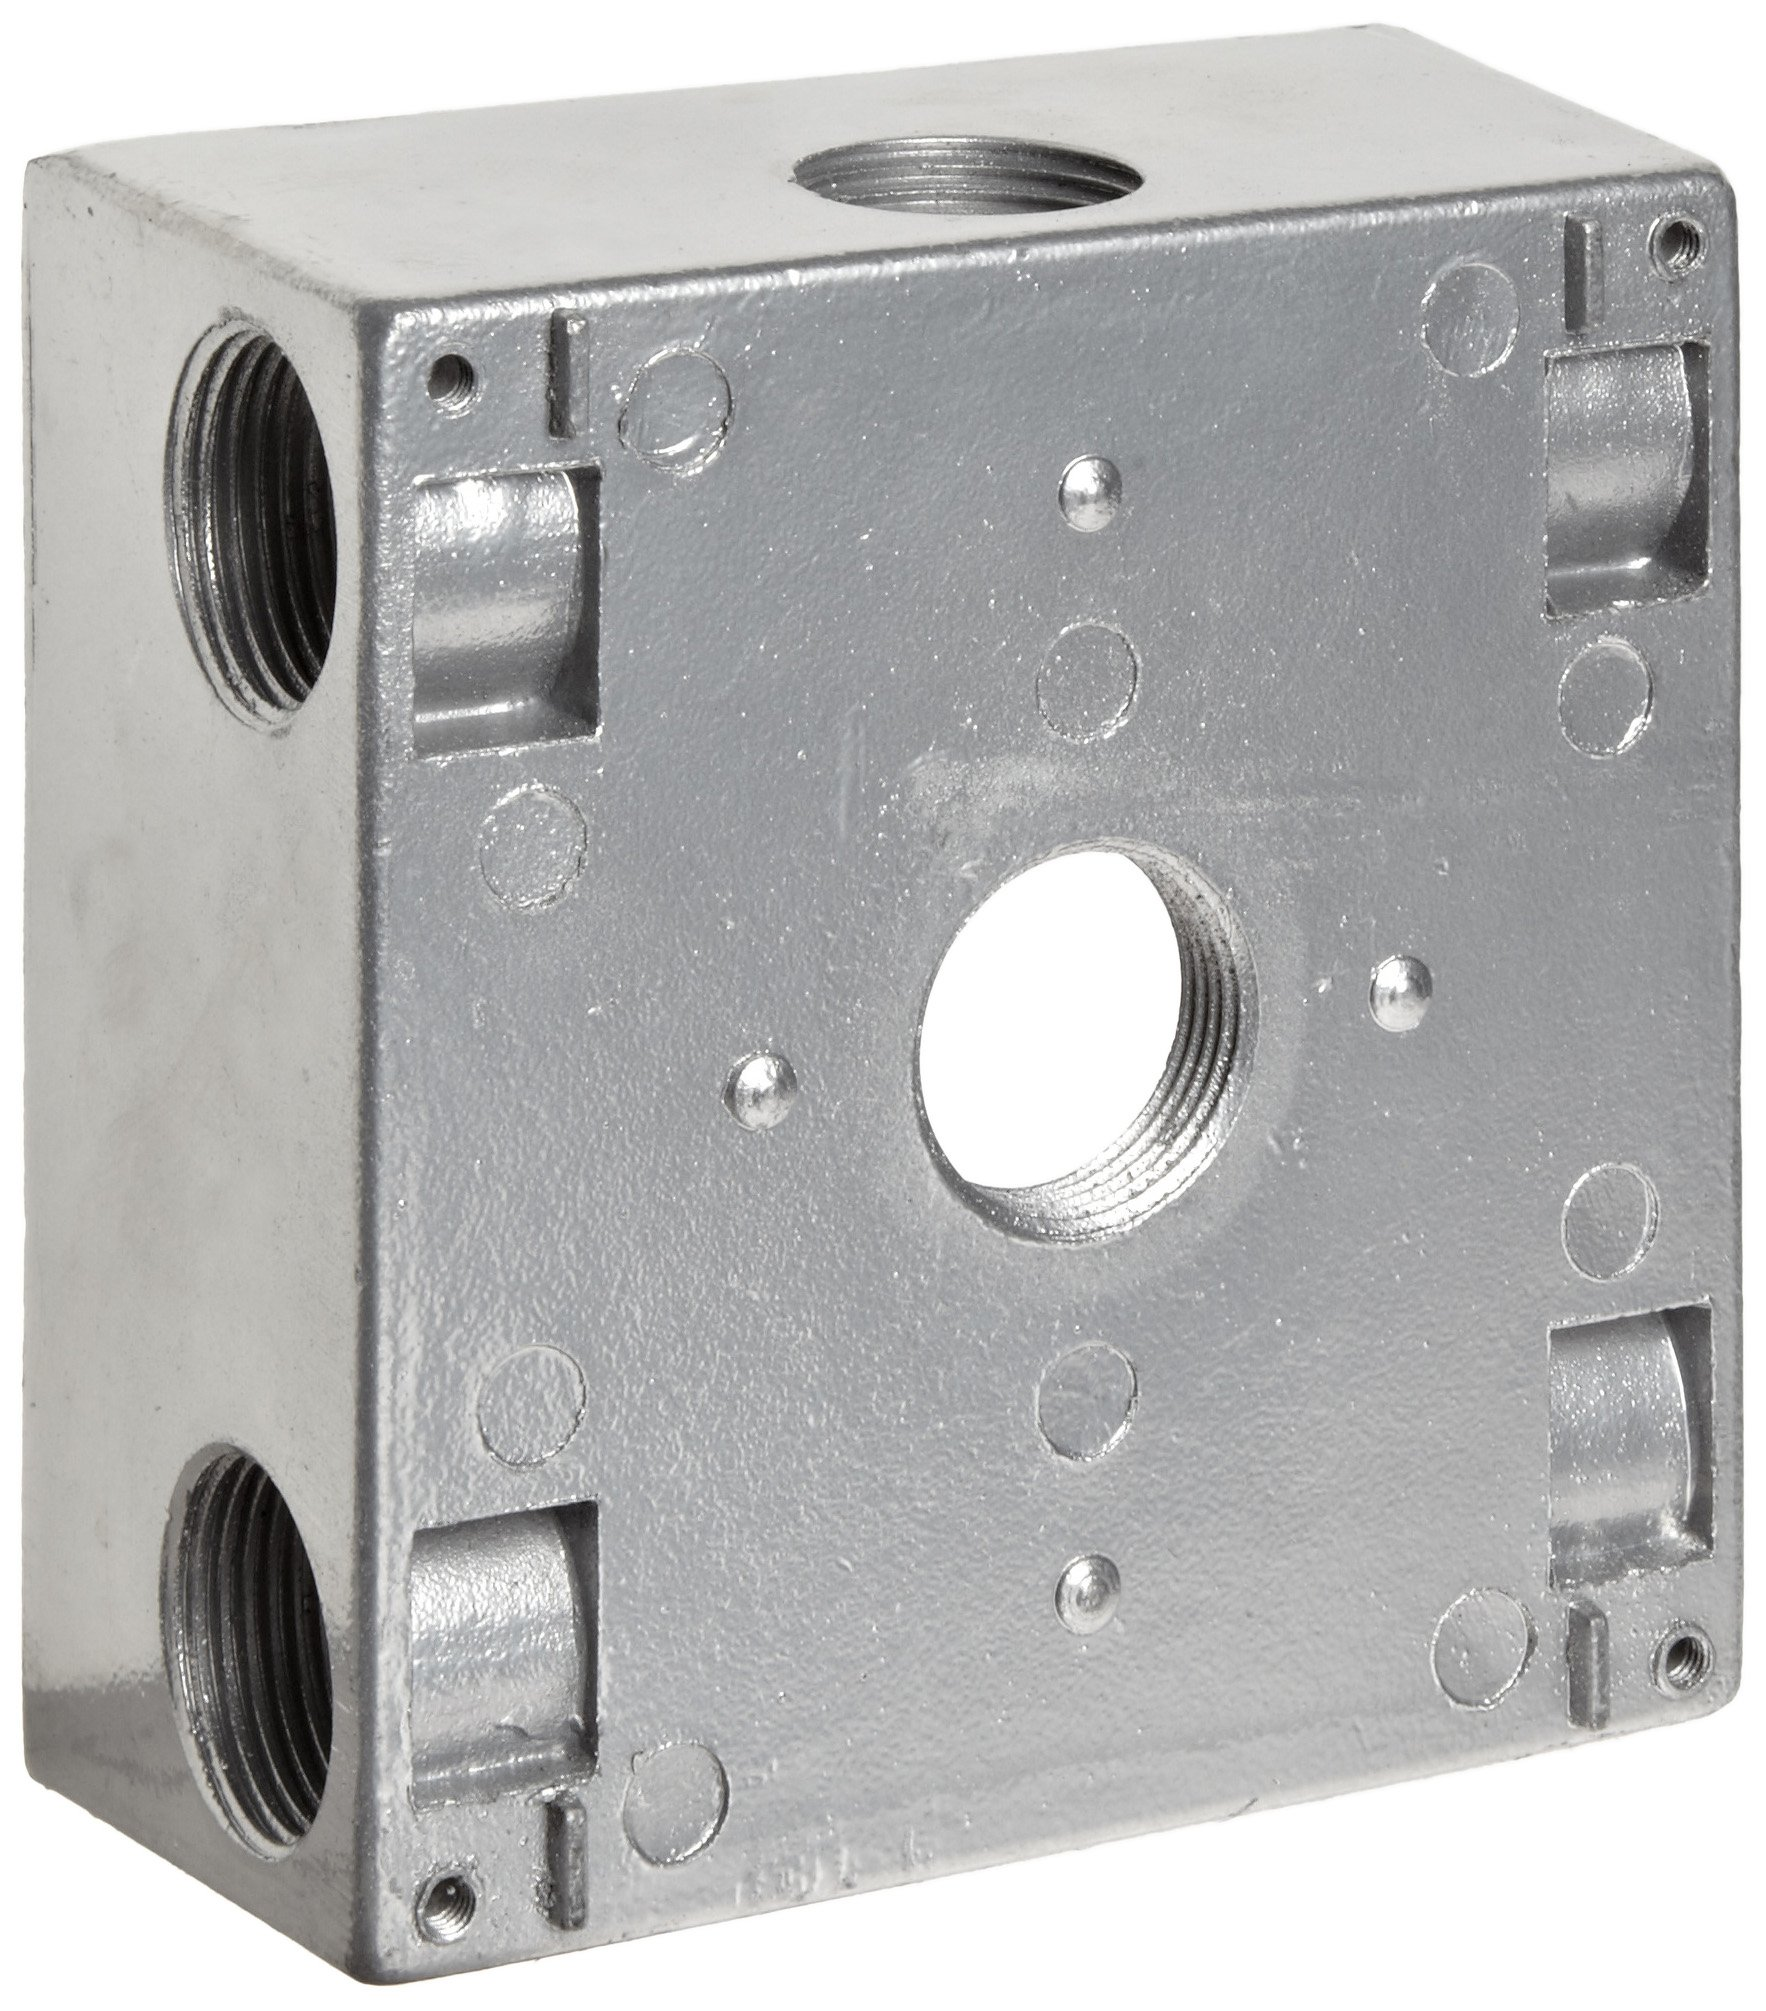 Morris Products 36340 Weatherproof Box, Two Gang, 30.5 Cubic Inch Capacity, 7 Outlet Holes, Gray, 4-1/2'' Length, 4-1/2'' Width, 2'' Depth, 3/4'' Outlet Hole Diameter, 2 Closure Plugs